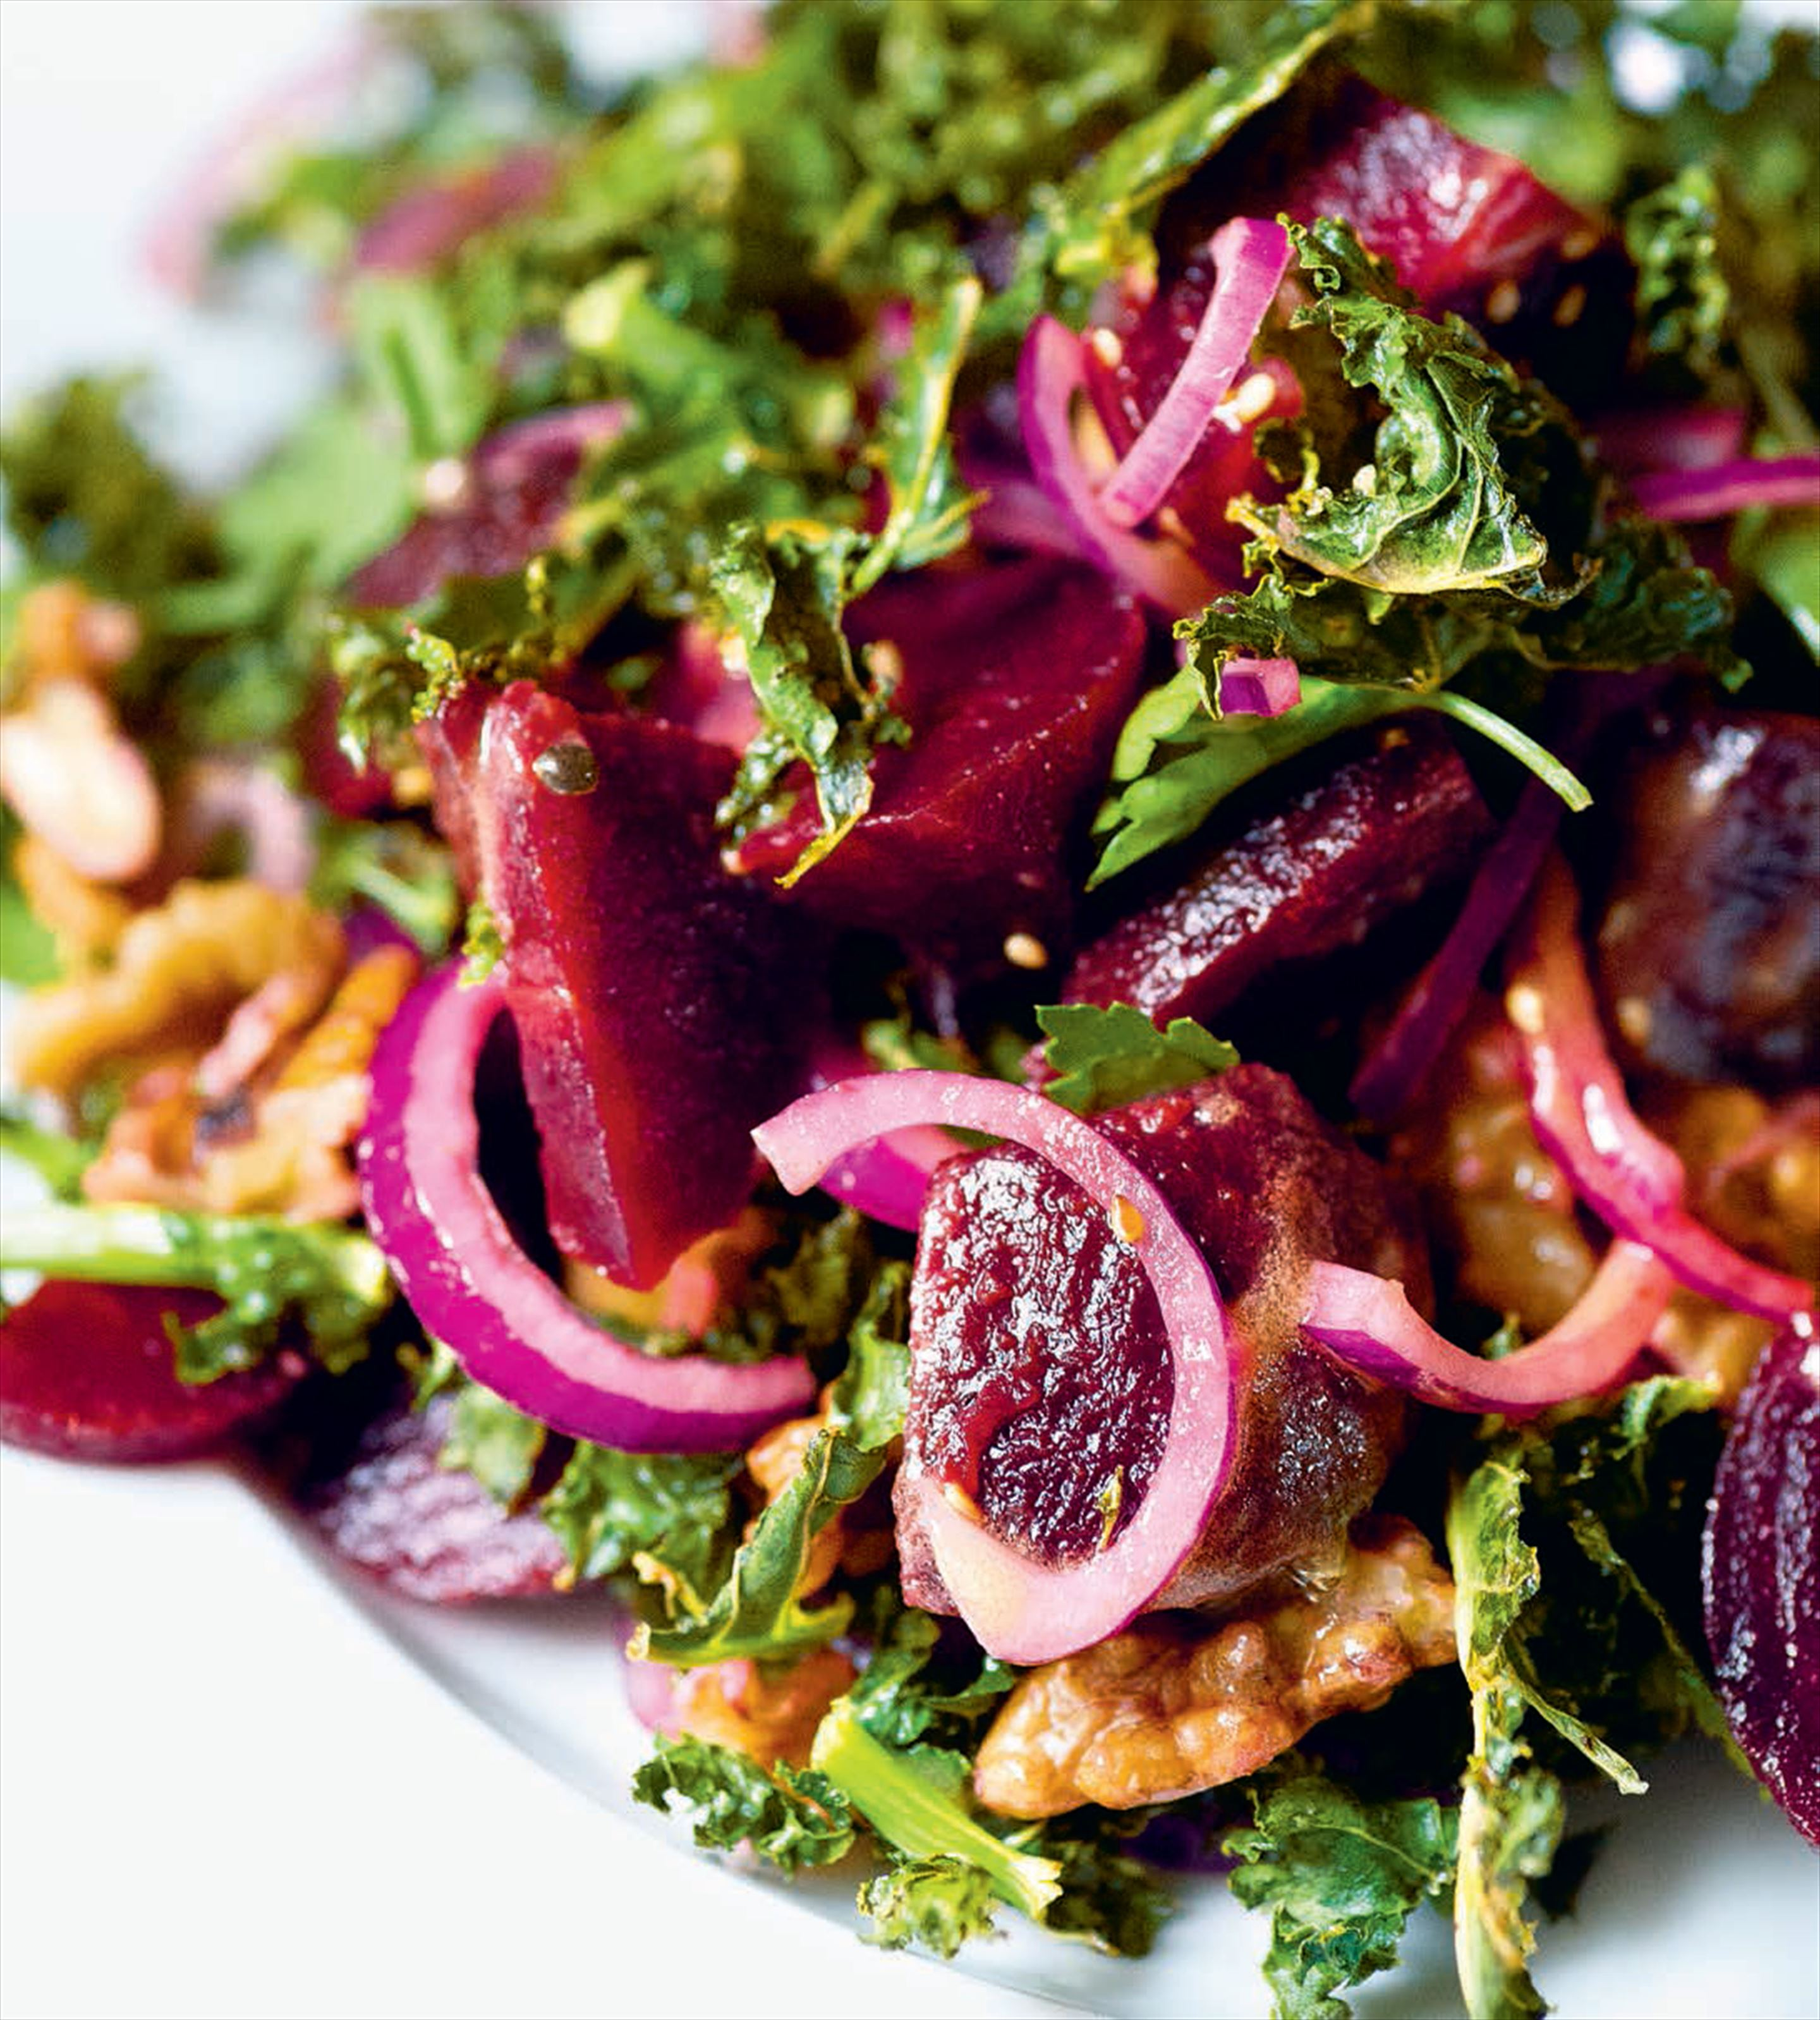 Crisp kale, beetroot, blue cheese & walnuts